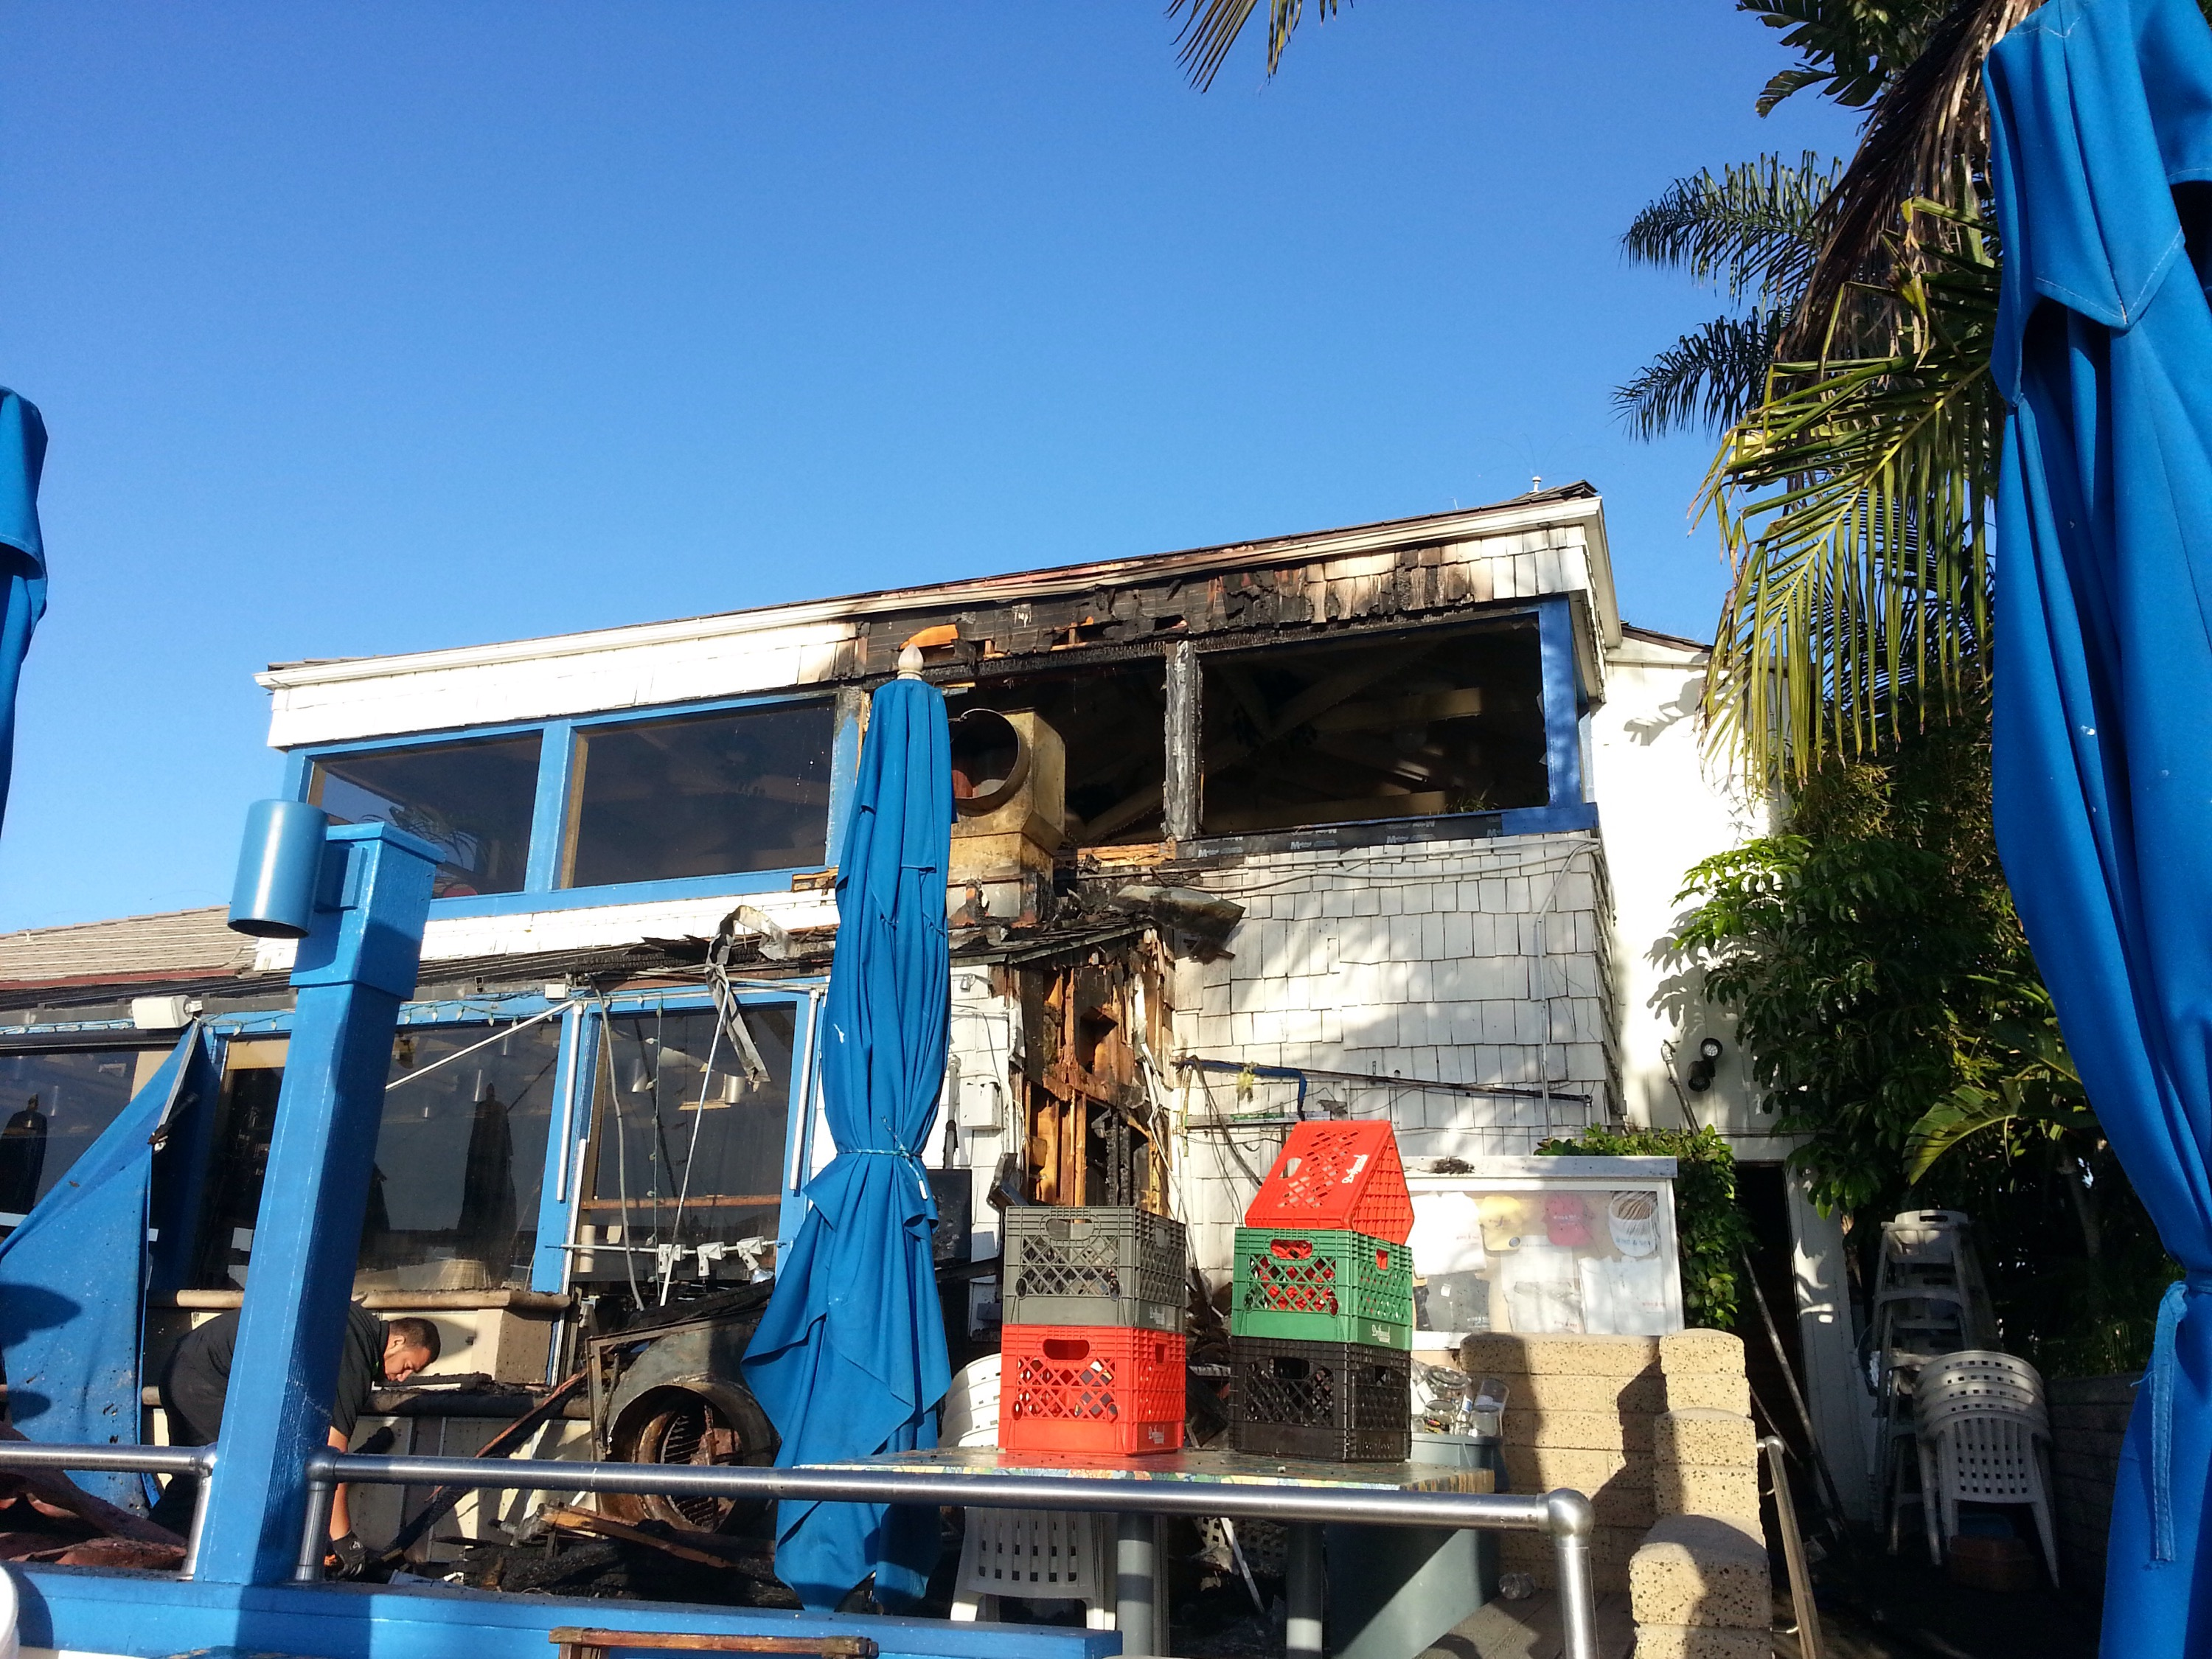 Fire At Wind And Sea Restaurant In Dana Point Harbor Overnight